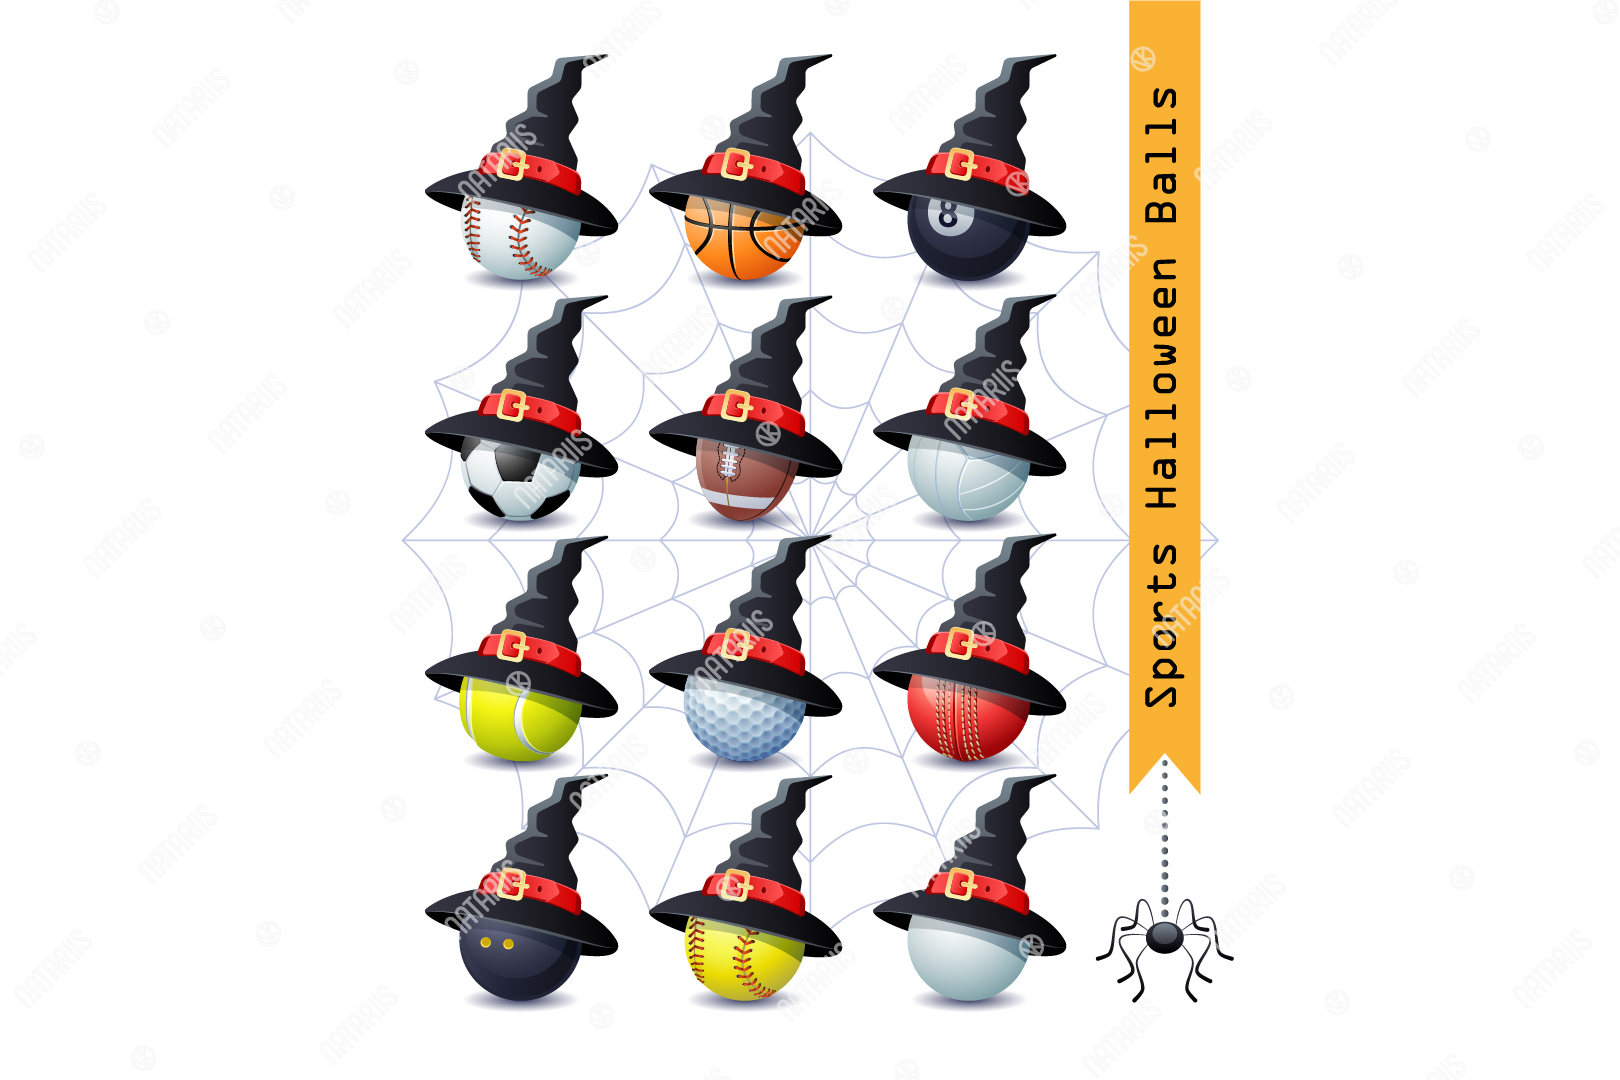 Download Free Collection Of 12 Halloween Sports Balls Graphic By Natariis for Cricut Explore, Silhouette and other cutting machines.